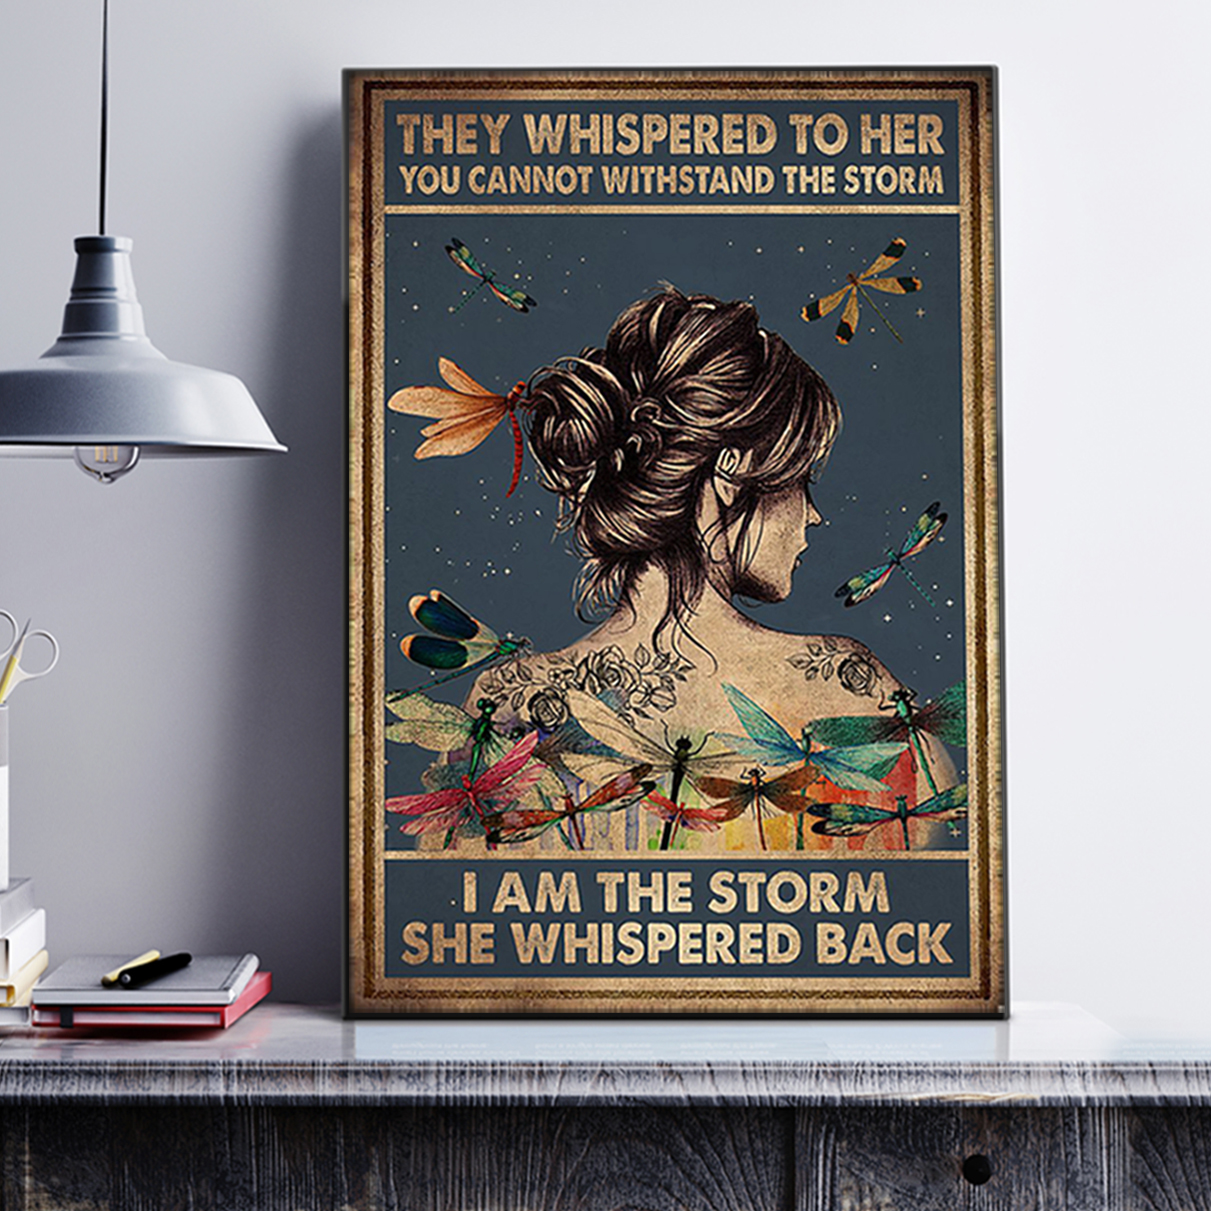 Hippie dragonfly tattoo girl they whispered to her you cannot withstand the storm poster A1